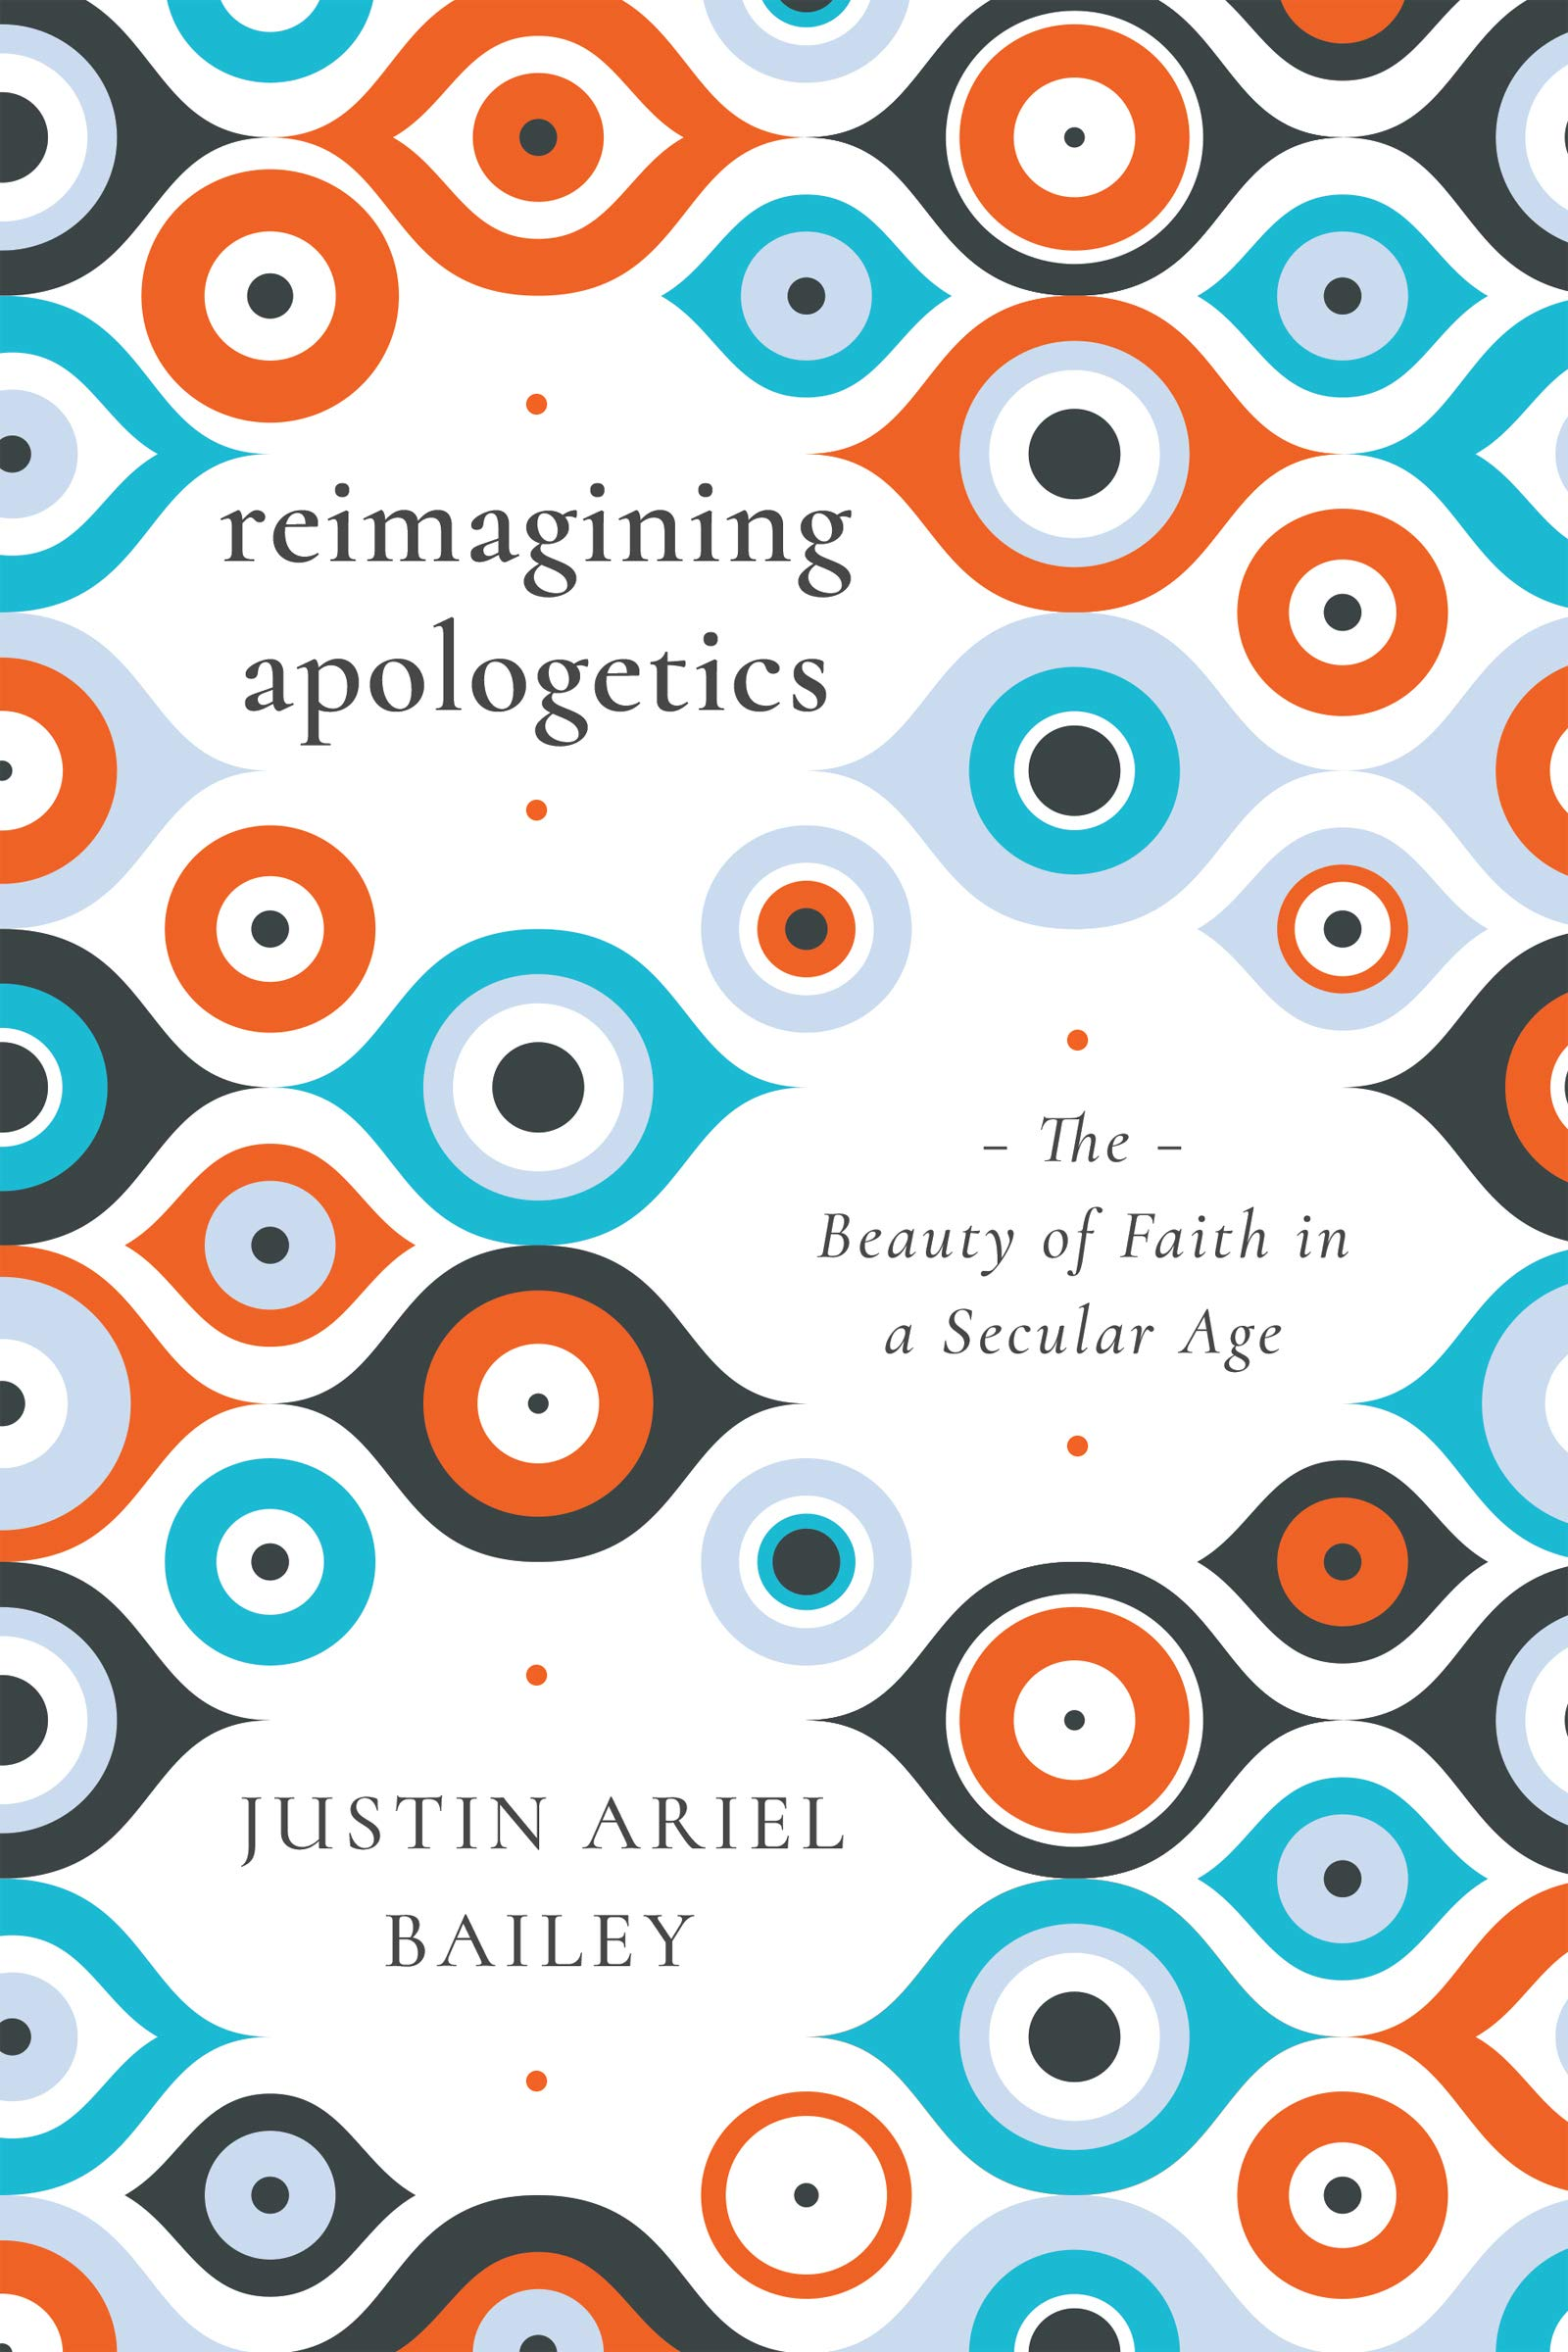 Book Review: 'Reimagining Apologetics: The Beauty of Faith in a Secular Age' by Justin Ariel Bailey